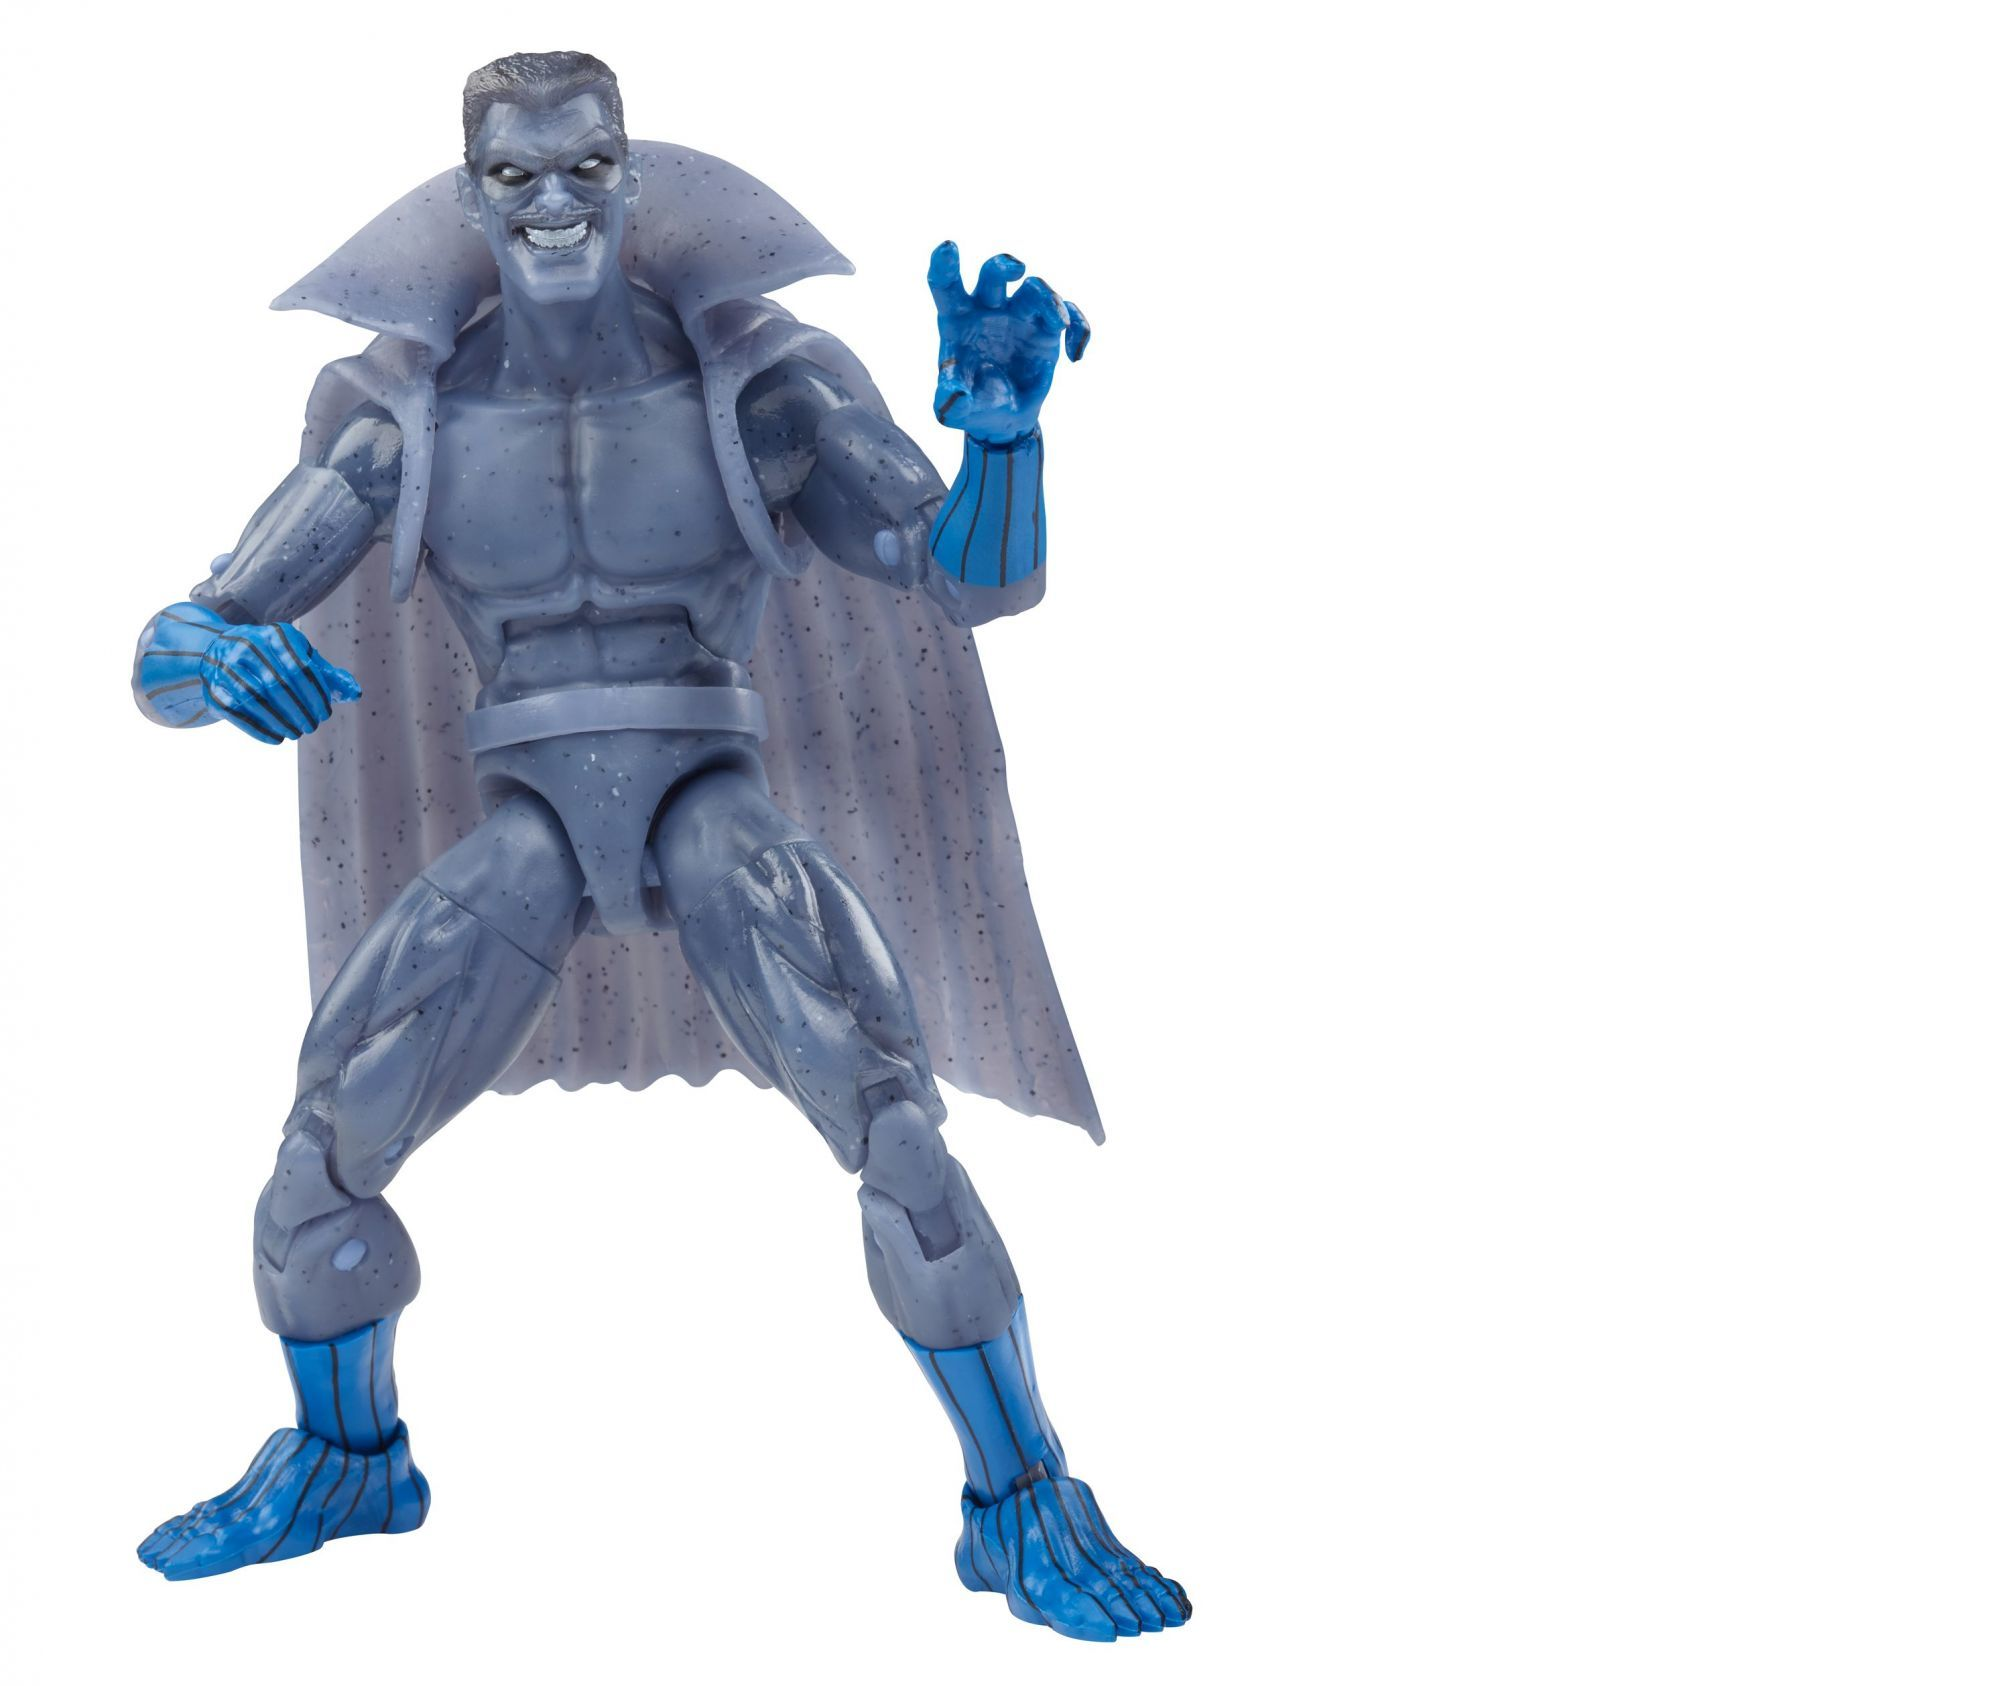 Marvel Legends Series 6-inch Grey Gargoyle Figure (Captain Marvel wave)